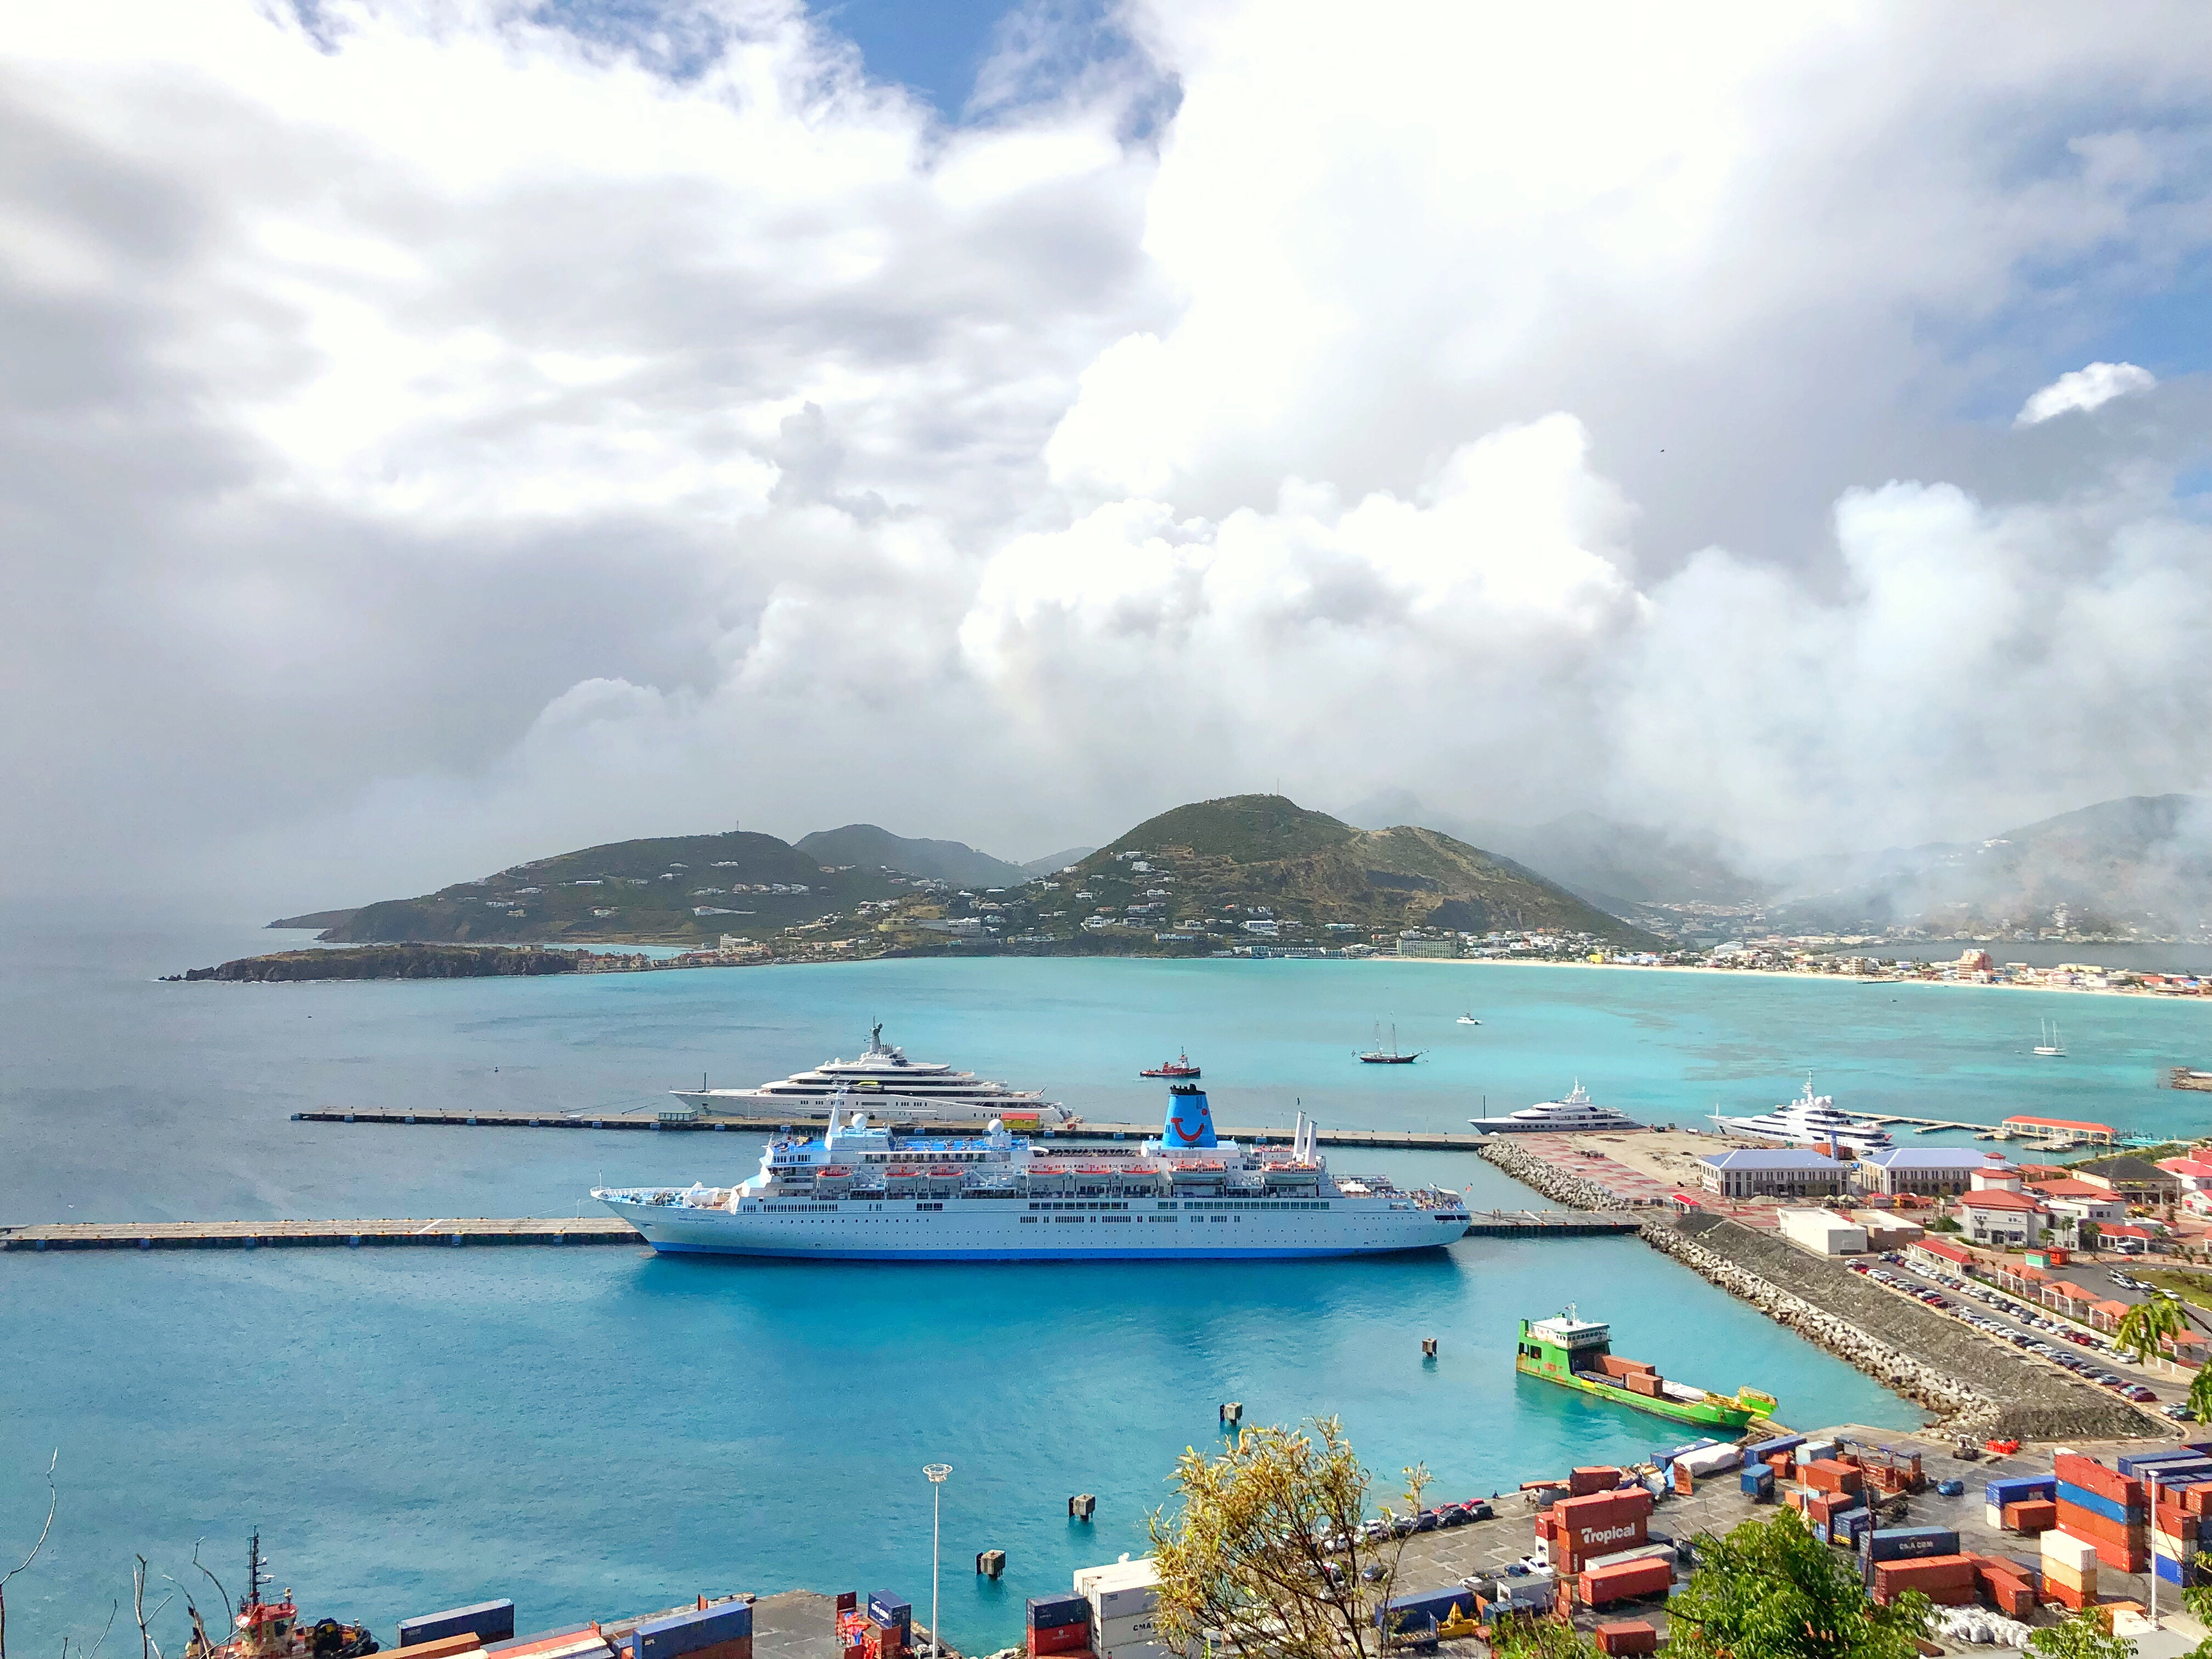 St. Maarten/St. Martin – a local's guide to the friendly island